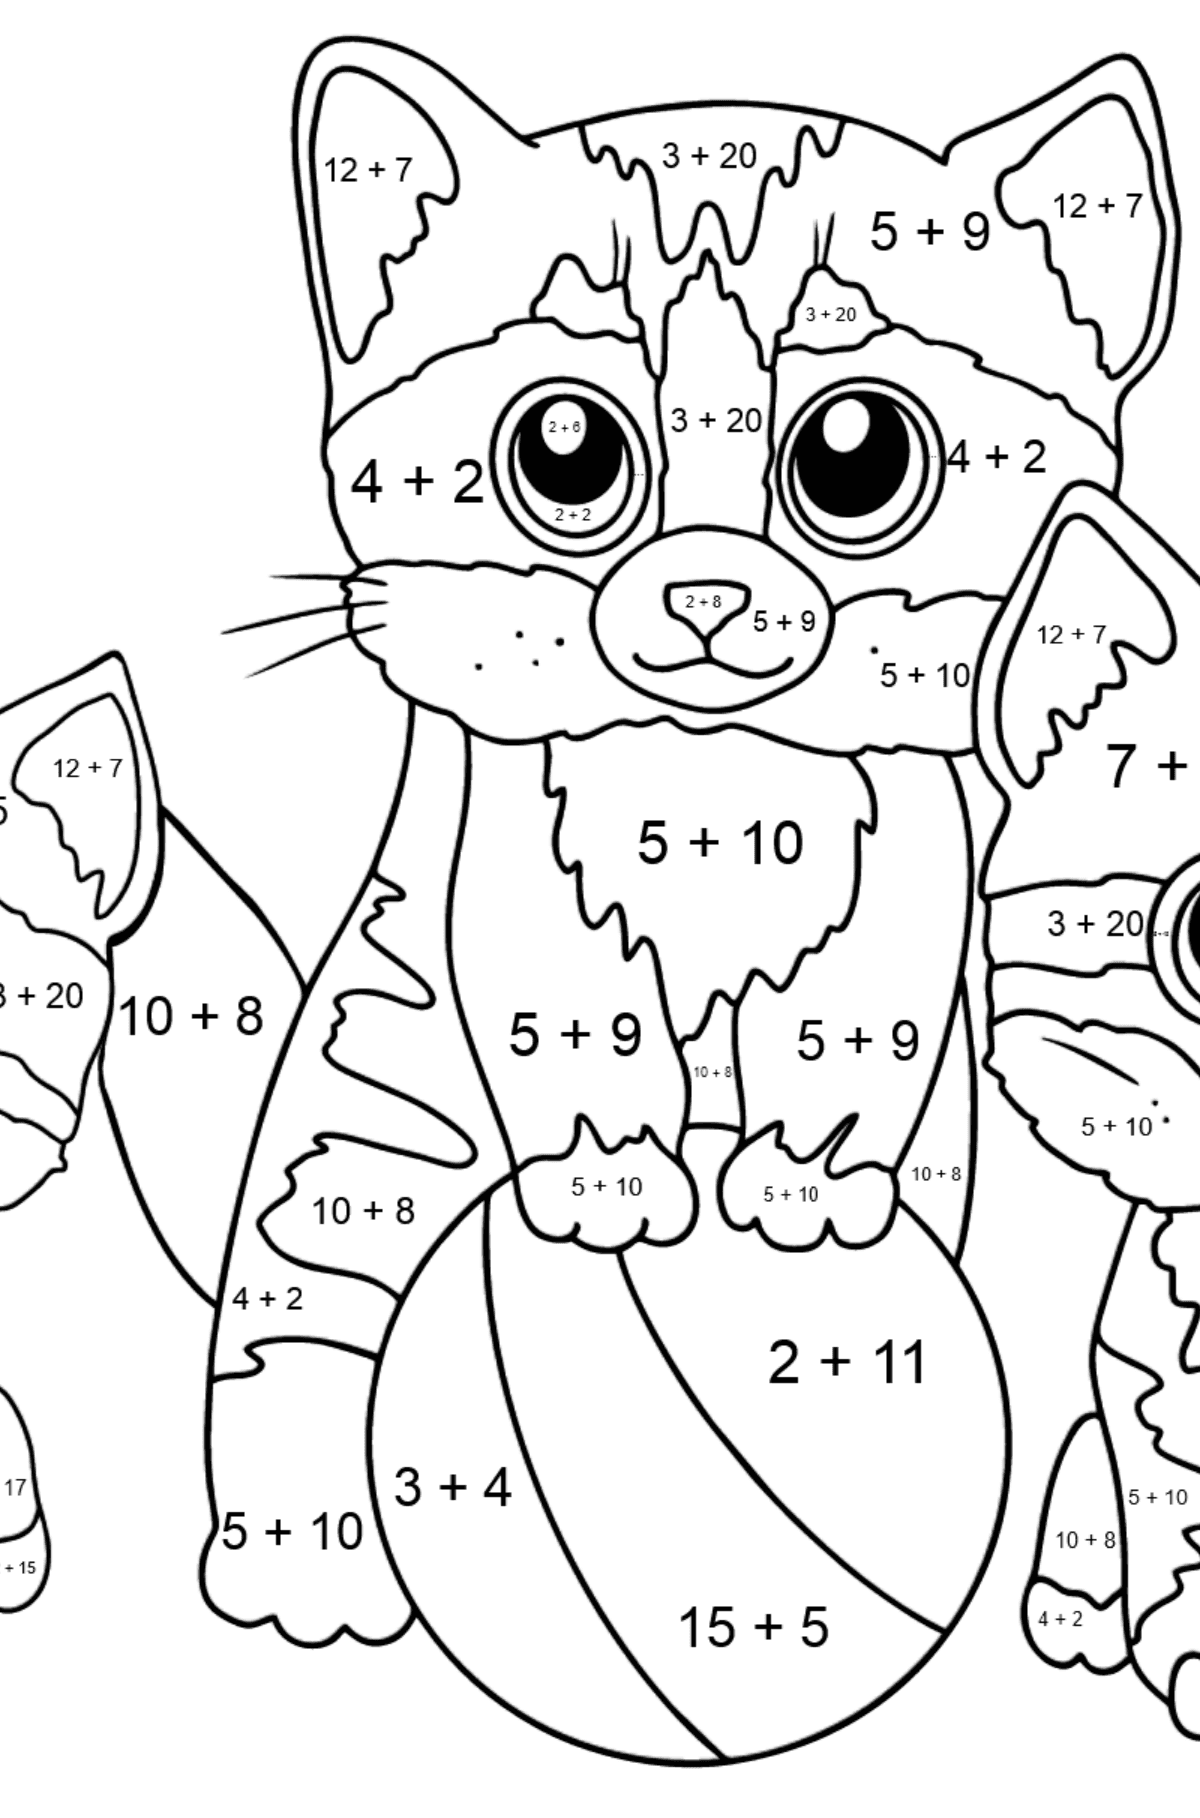 Coloring Page - Three Kittens are Playing Together with a Ball  - Math Coloring - Addition for Kids